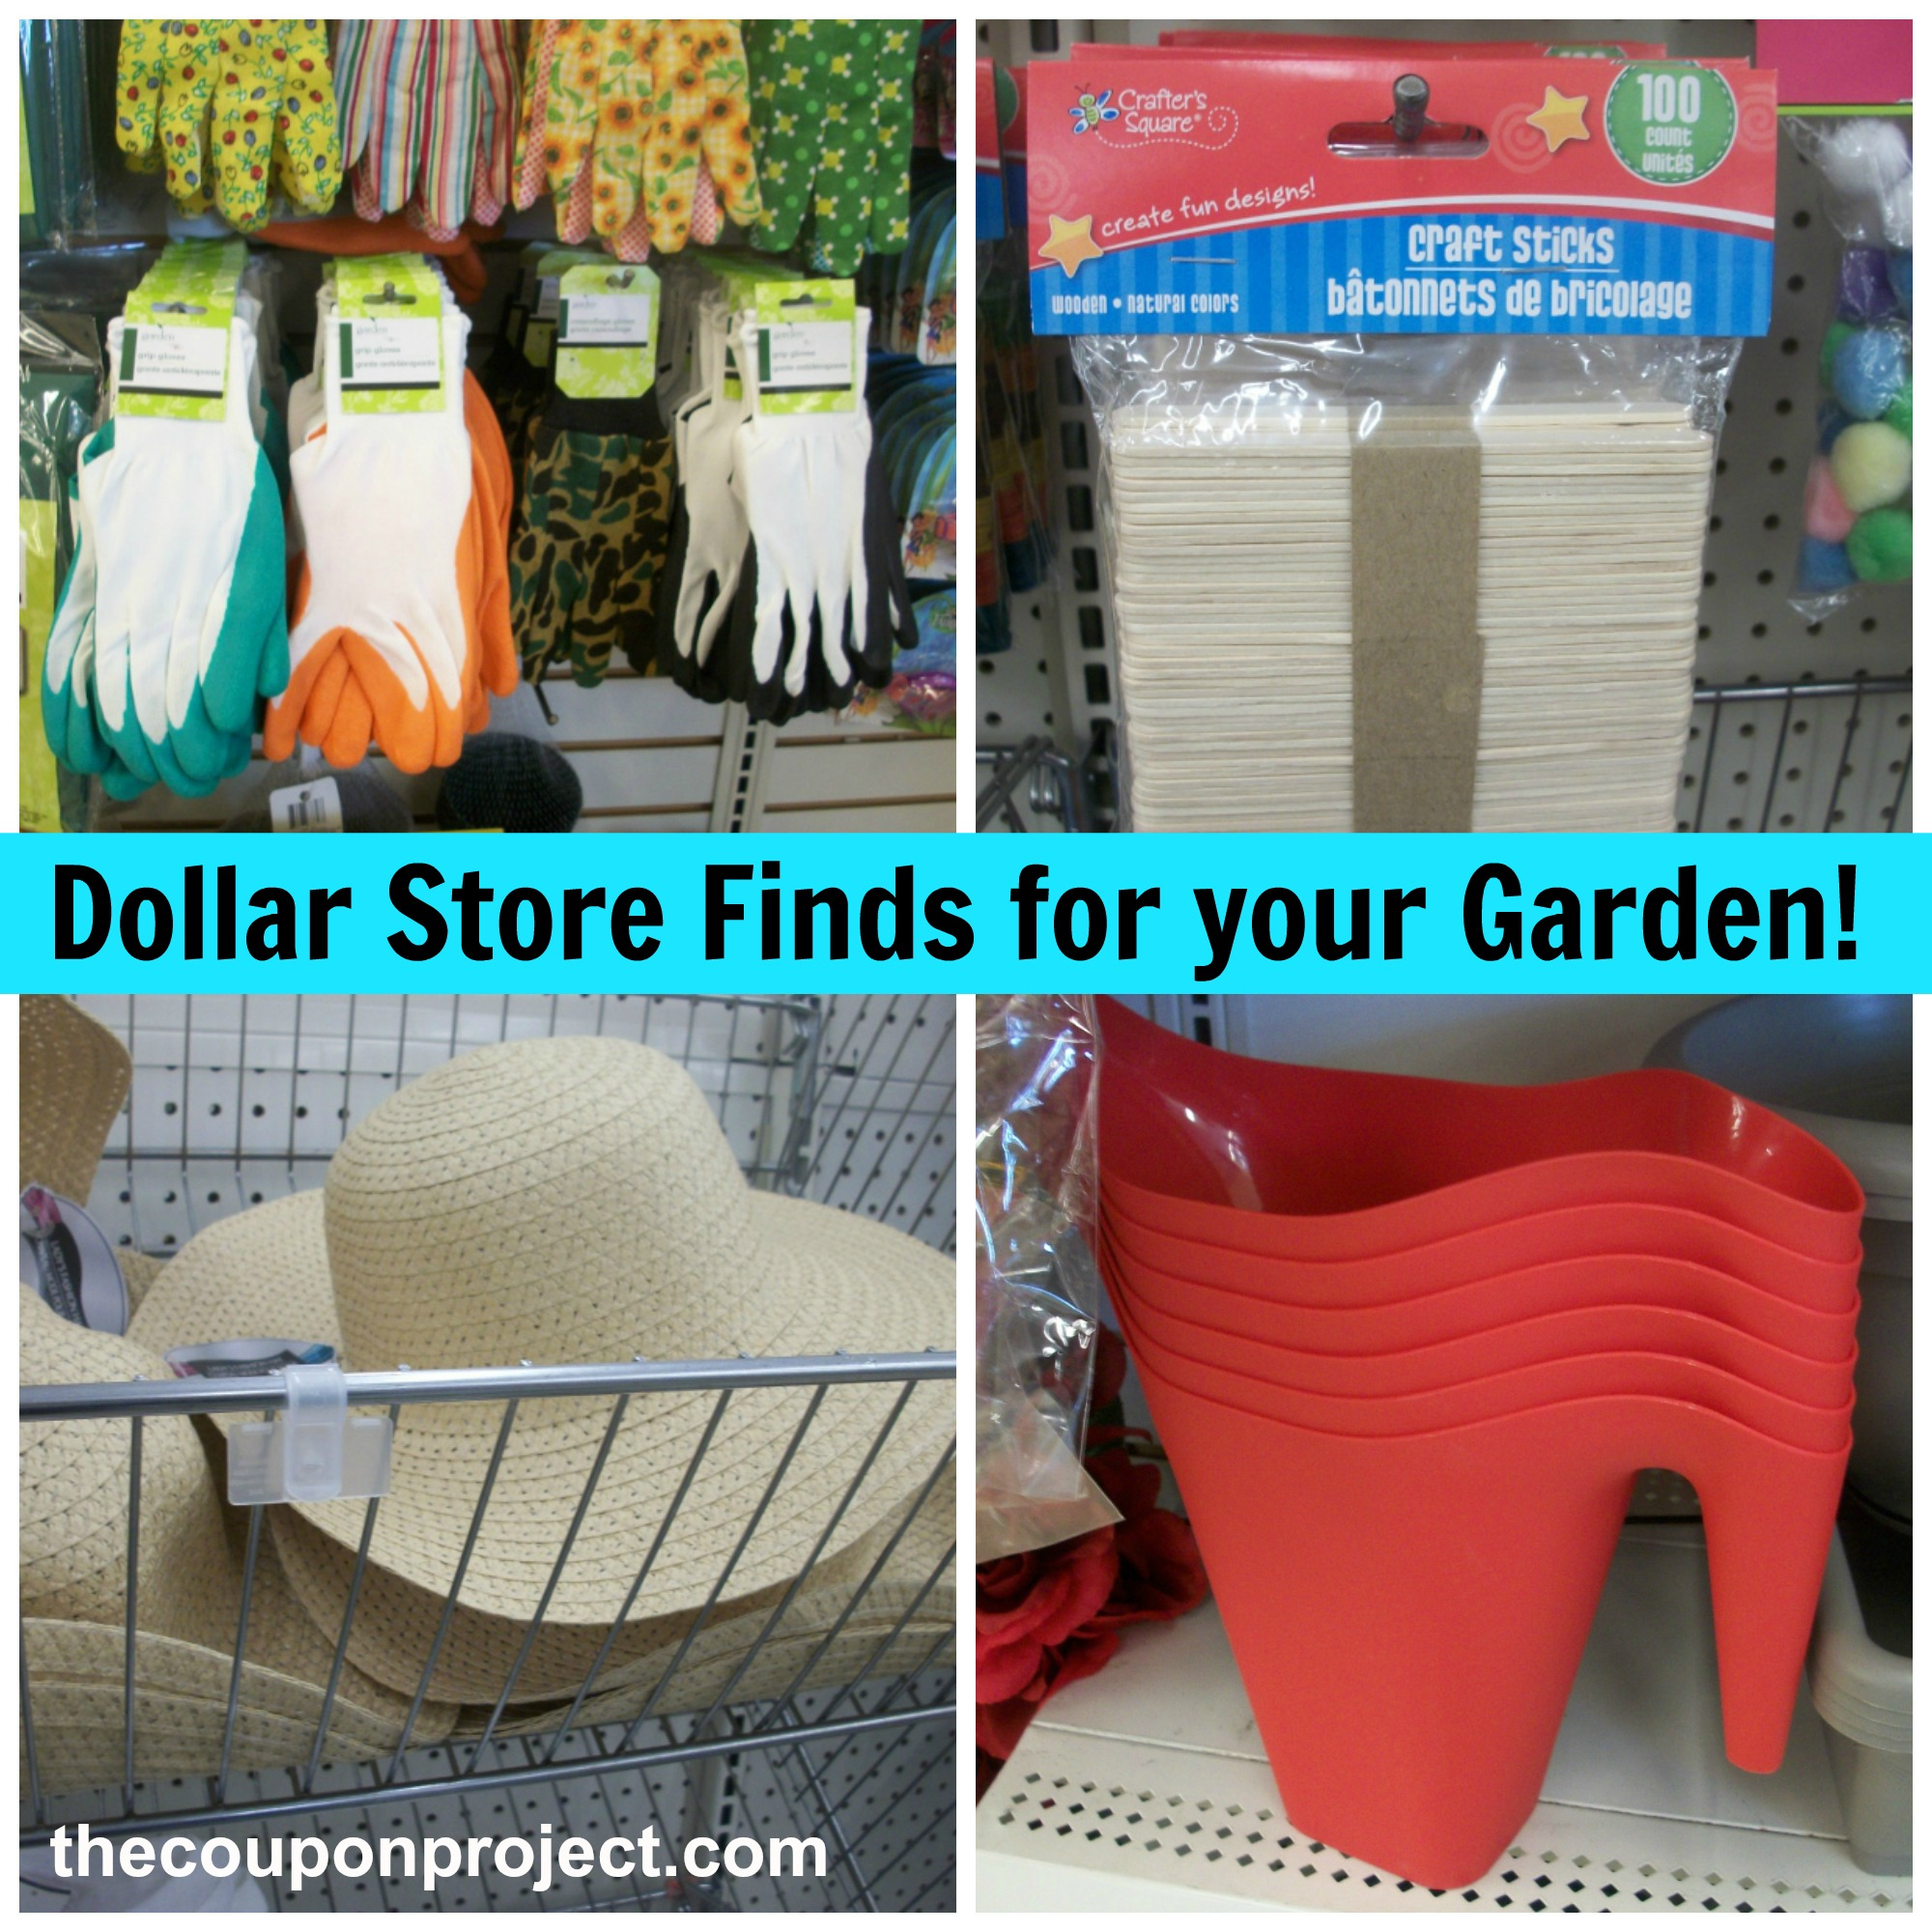 Frugal Gardening  19 Things for the Garden I Found at the Dollar Store eca441061bd4